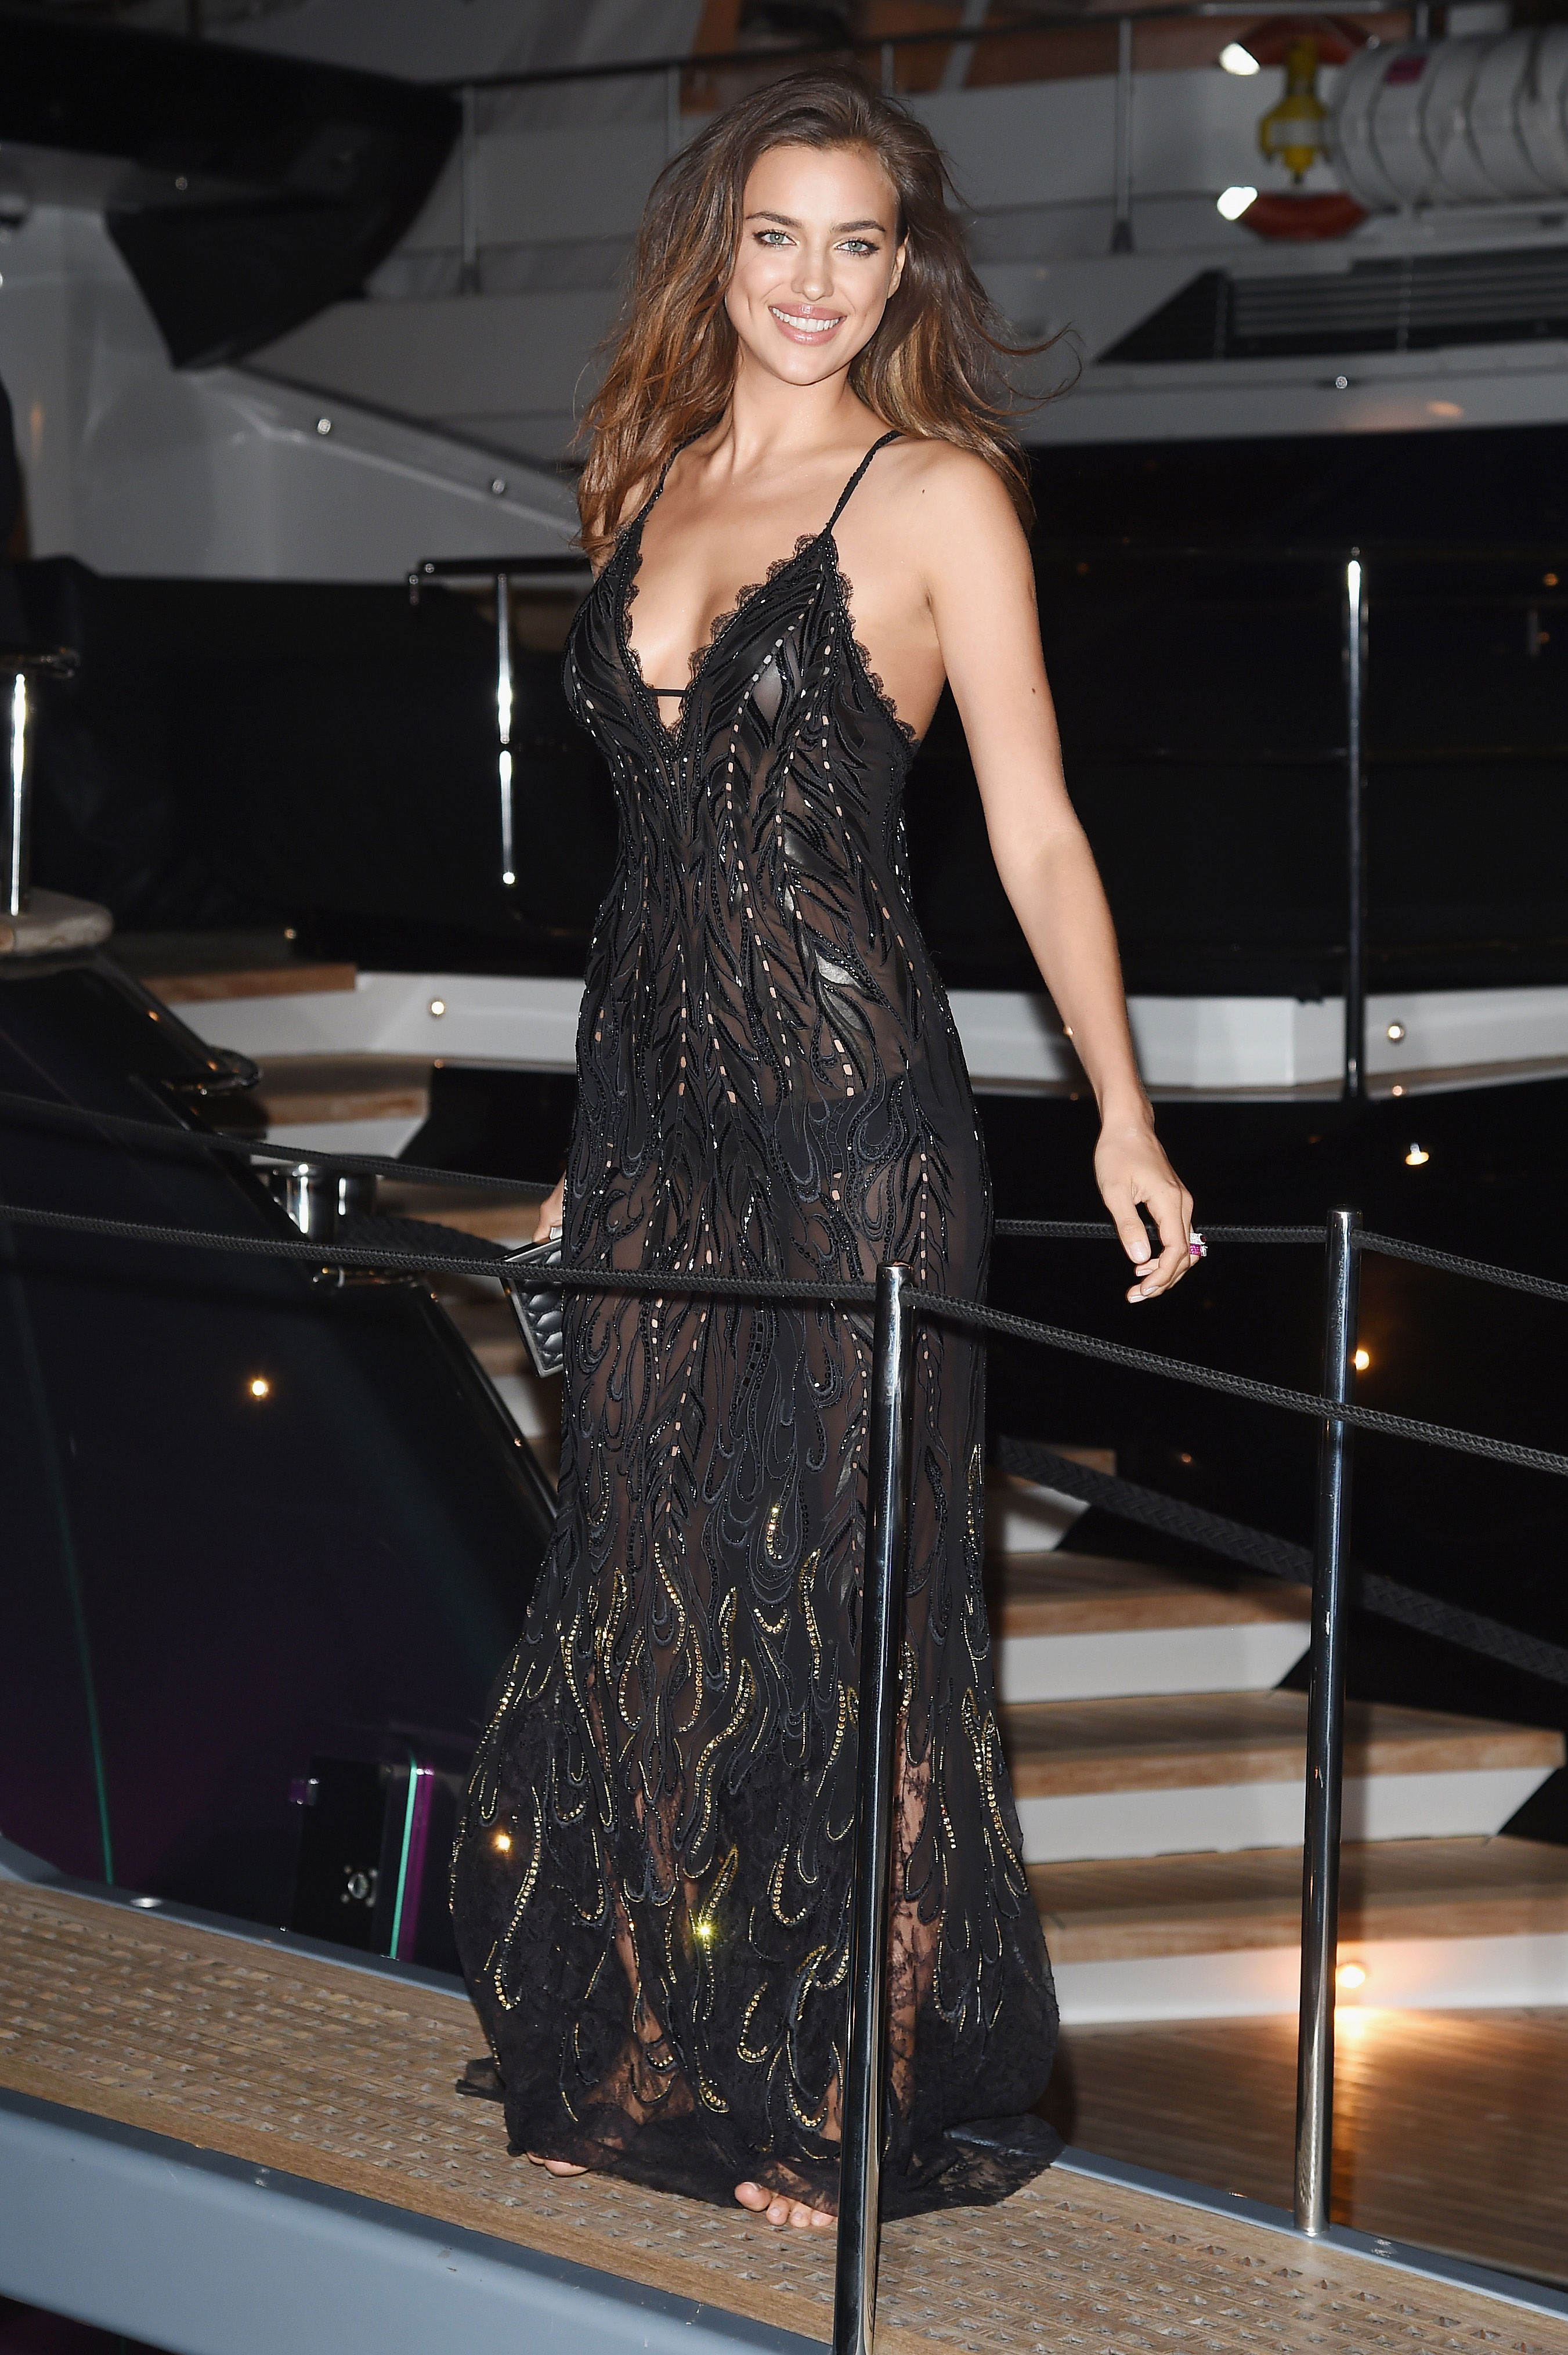 Irina Shayk attends the Roberto Cavalli yacht party at the 67th Annual Cannes Film Festival.